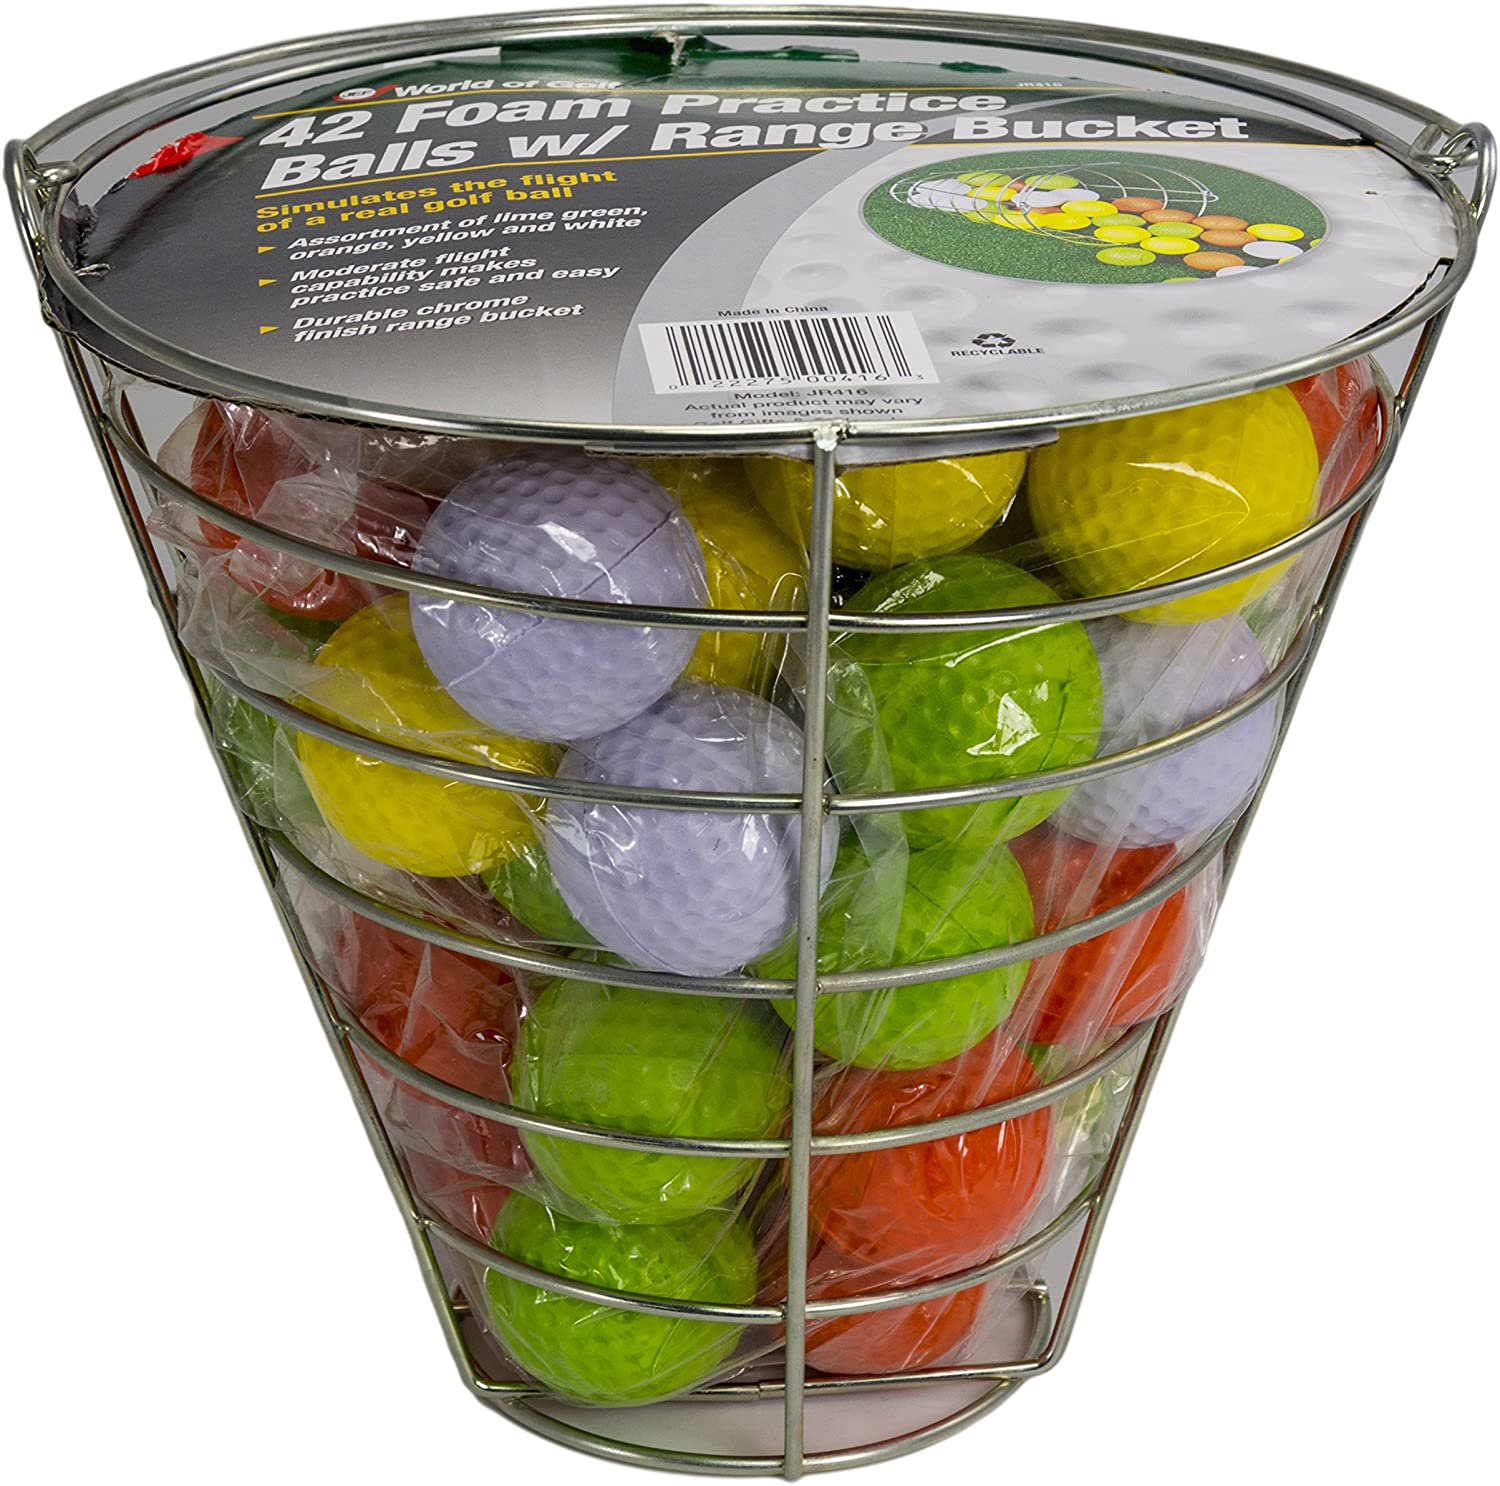 JEF WORLD OF GOLF Foam Practice Balls 42 Multi-Colored Balls